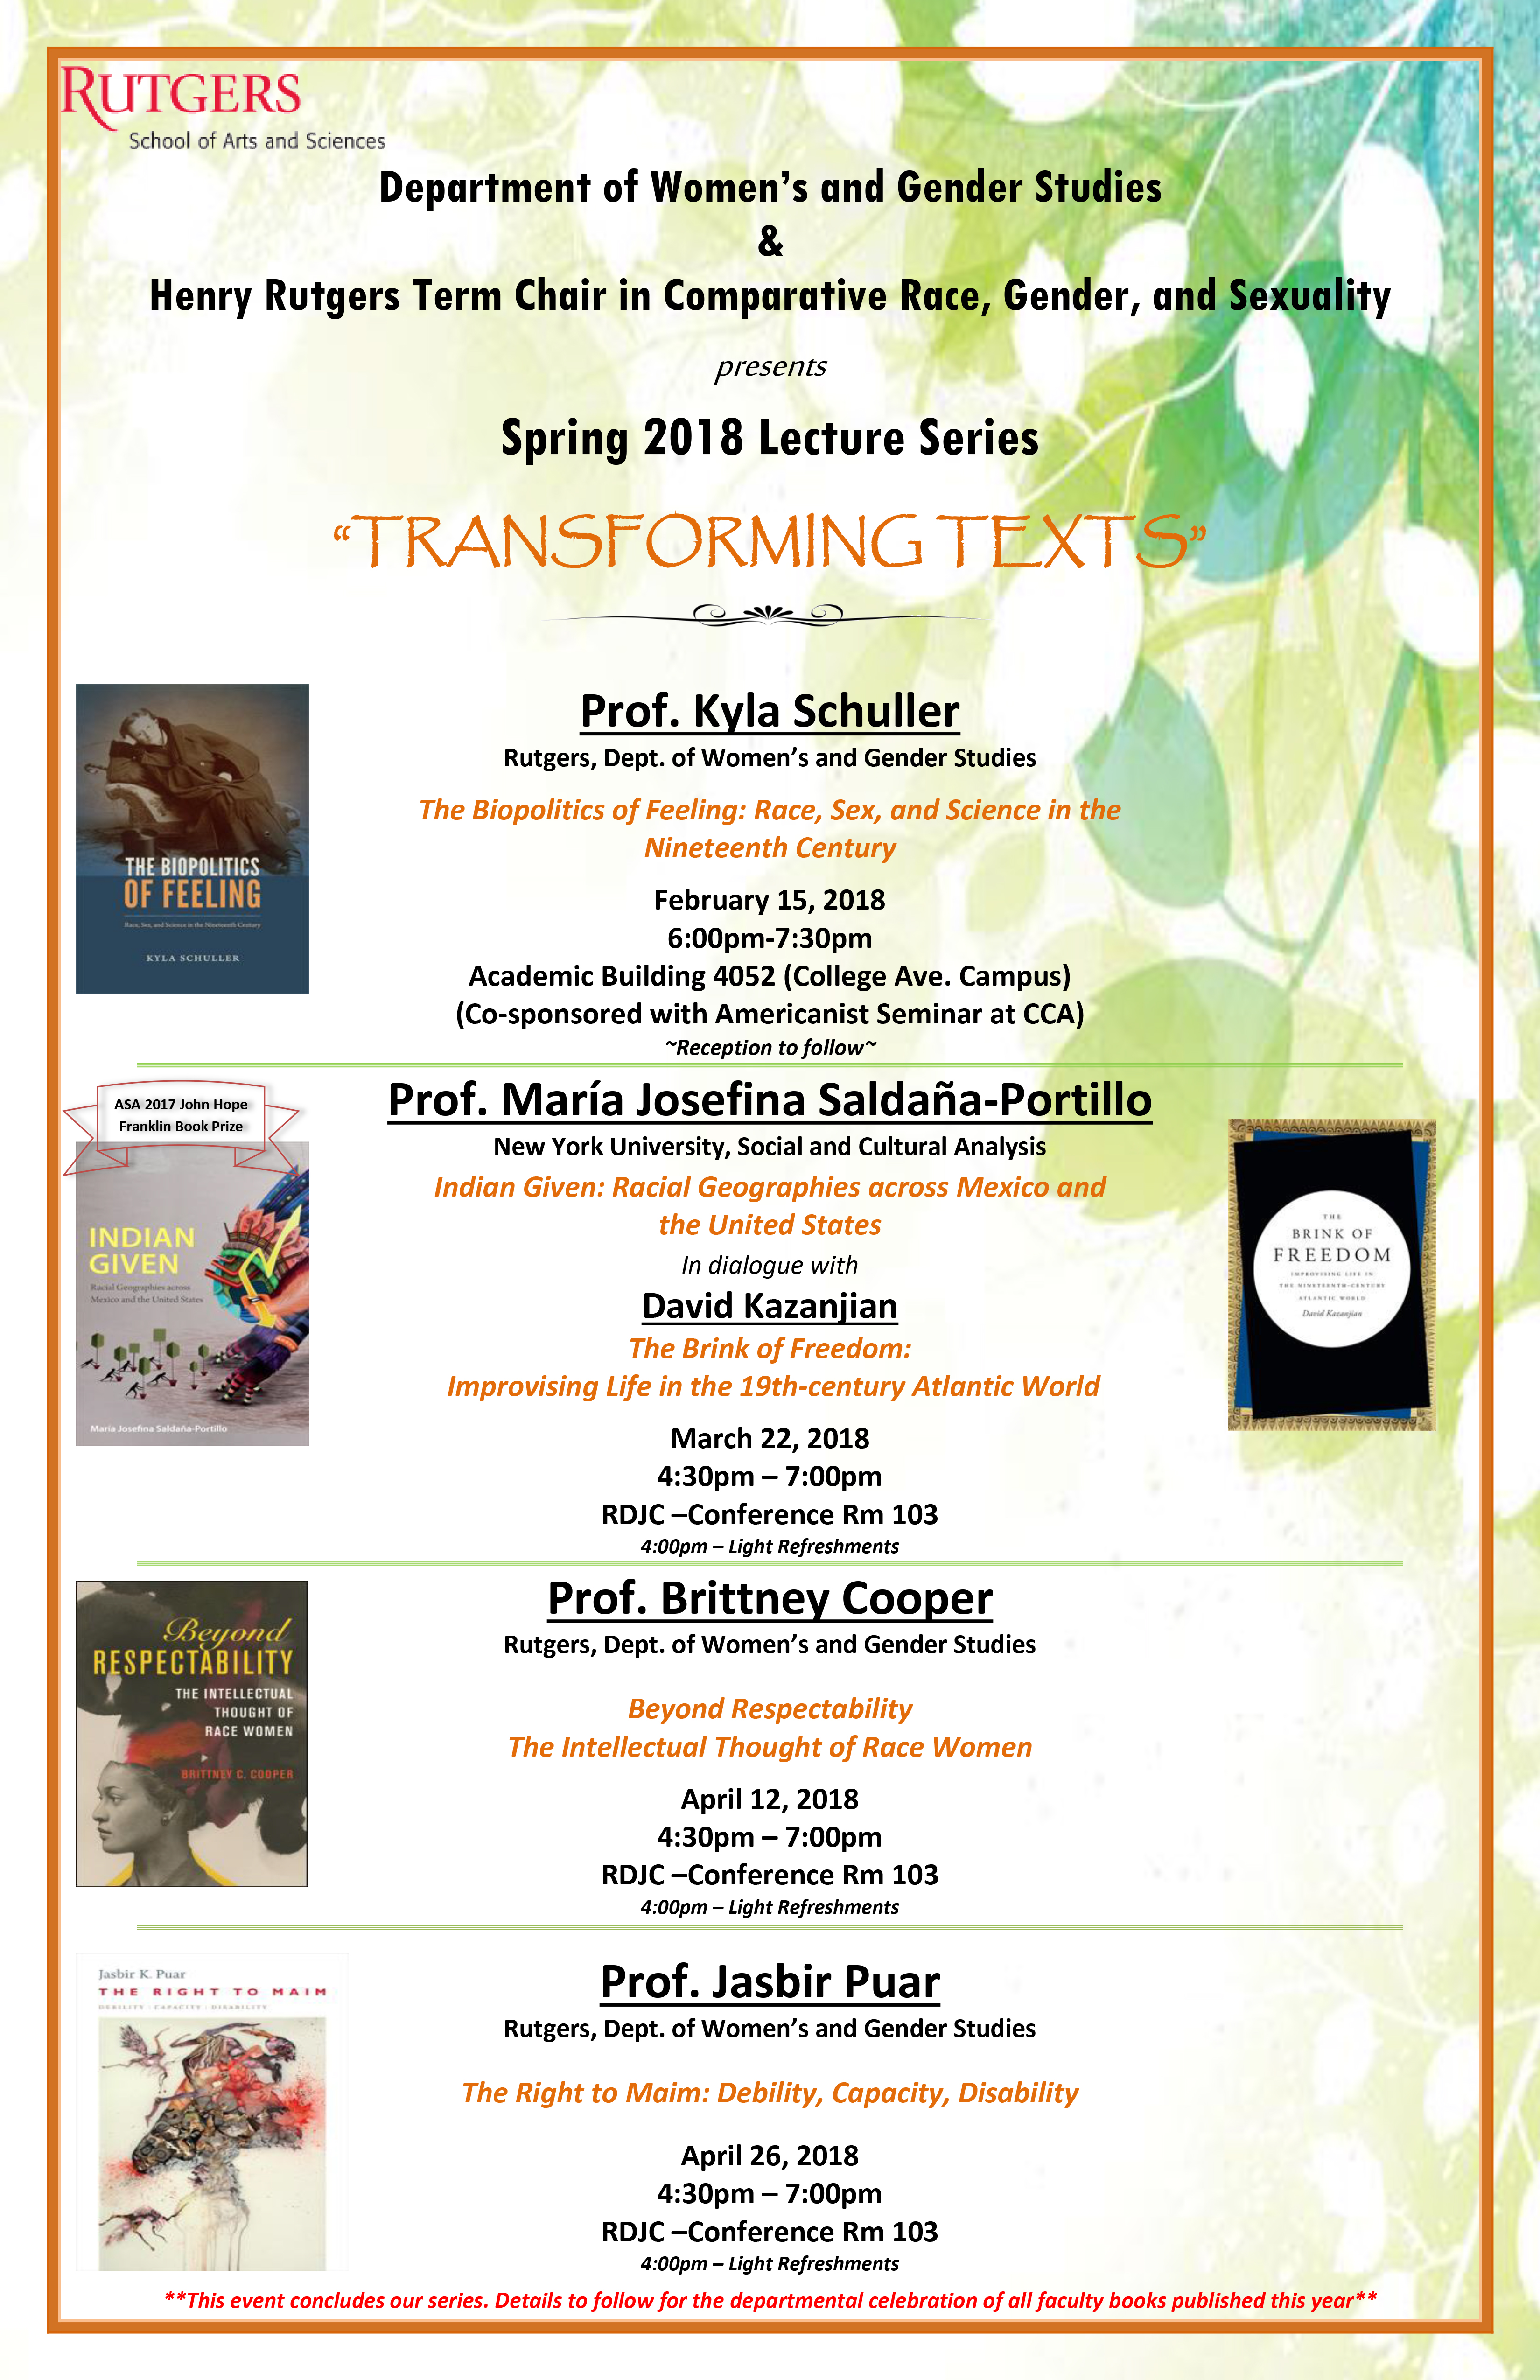 WGS HRTCCRGS Spring 2018 Lecture Series Flyer